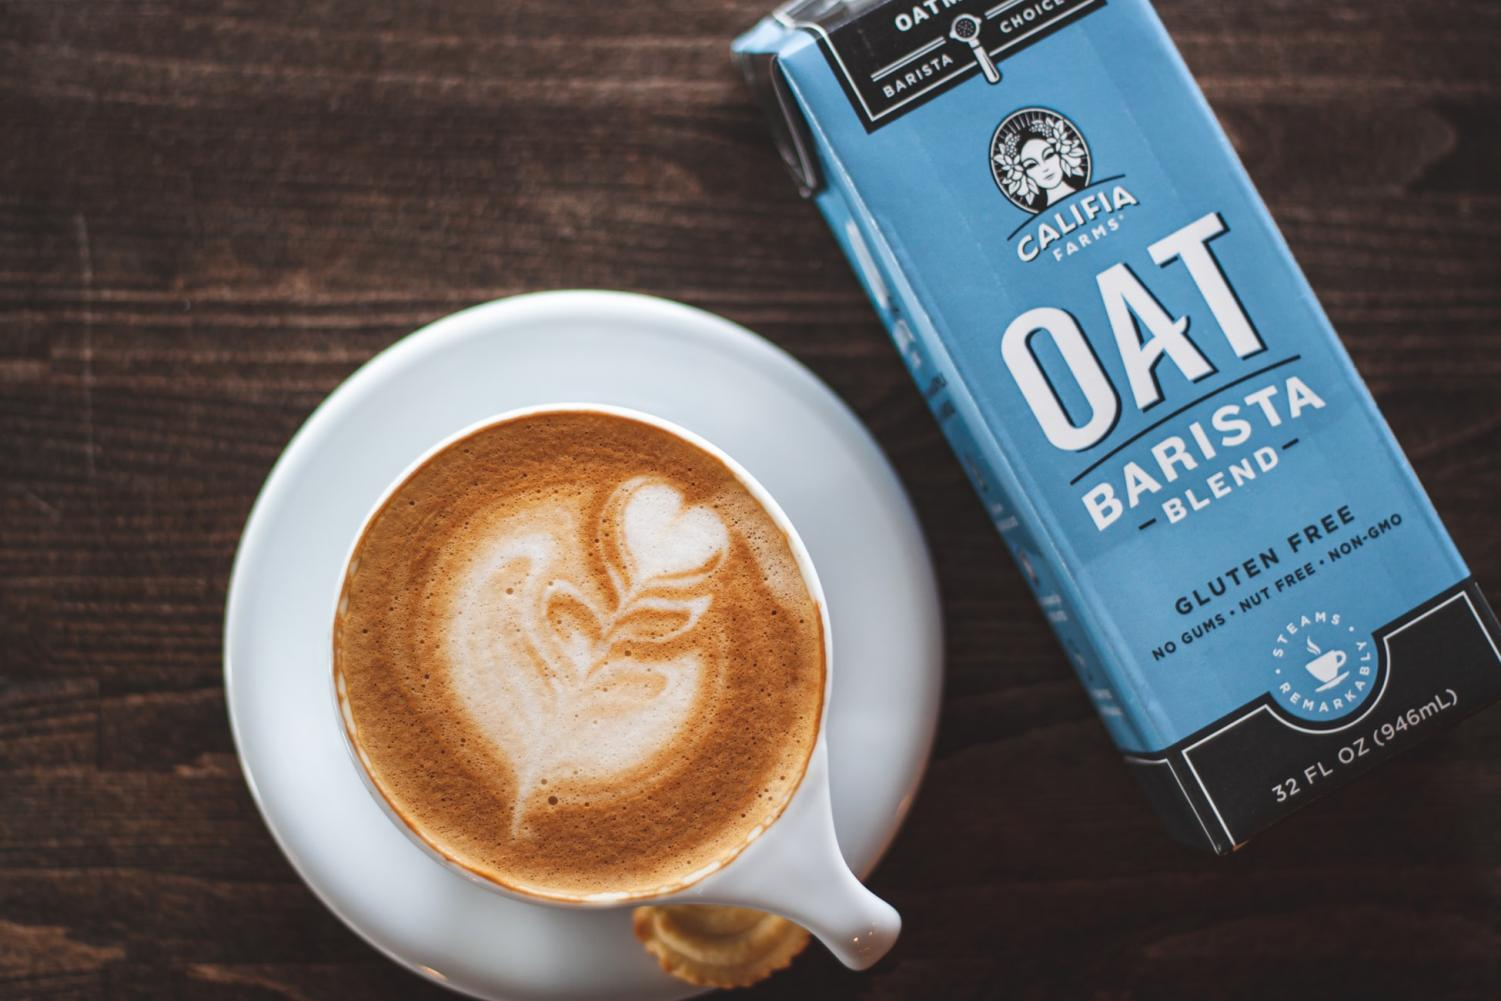 Oat milk is a popular alternative at coffee shops in the Metro area. Many locally owned businesses have struggled to find it because national chains bought large quantities.